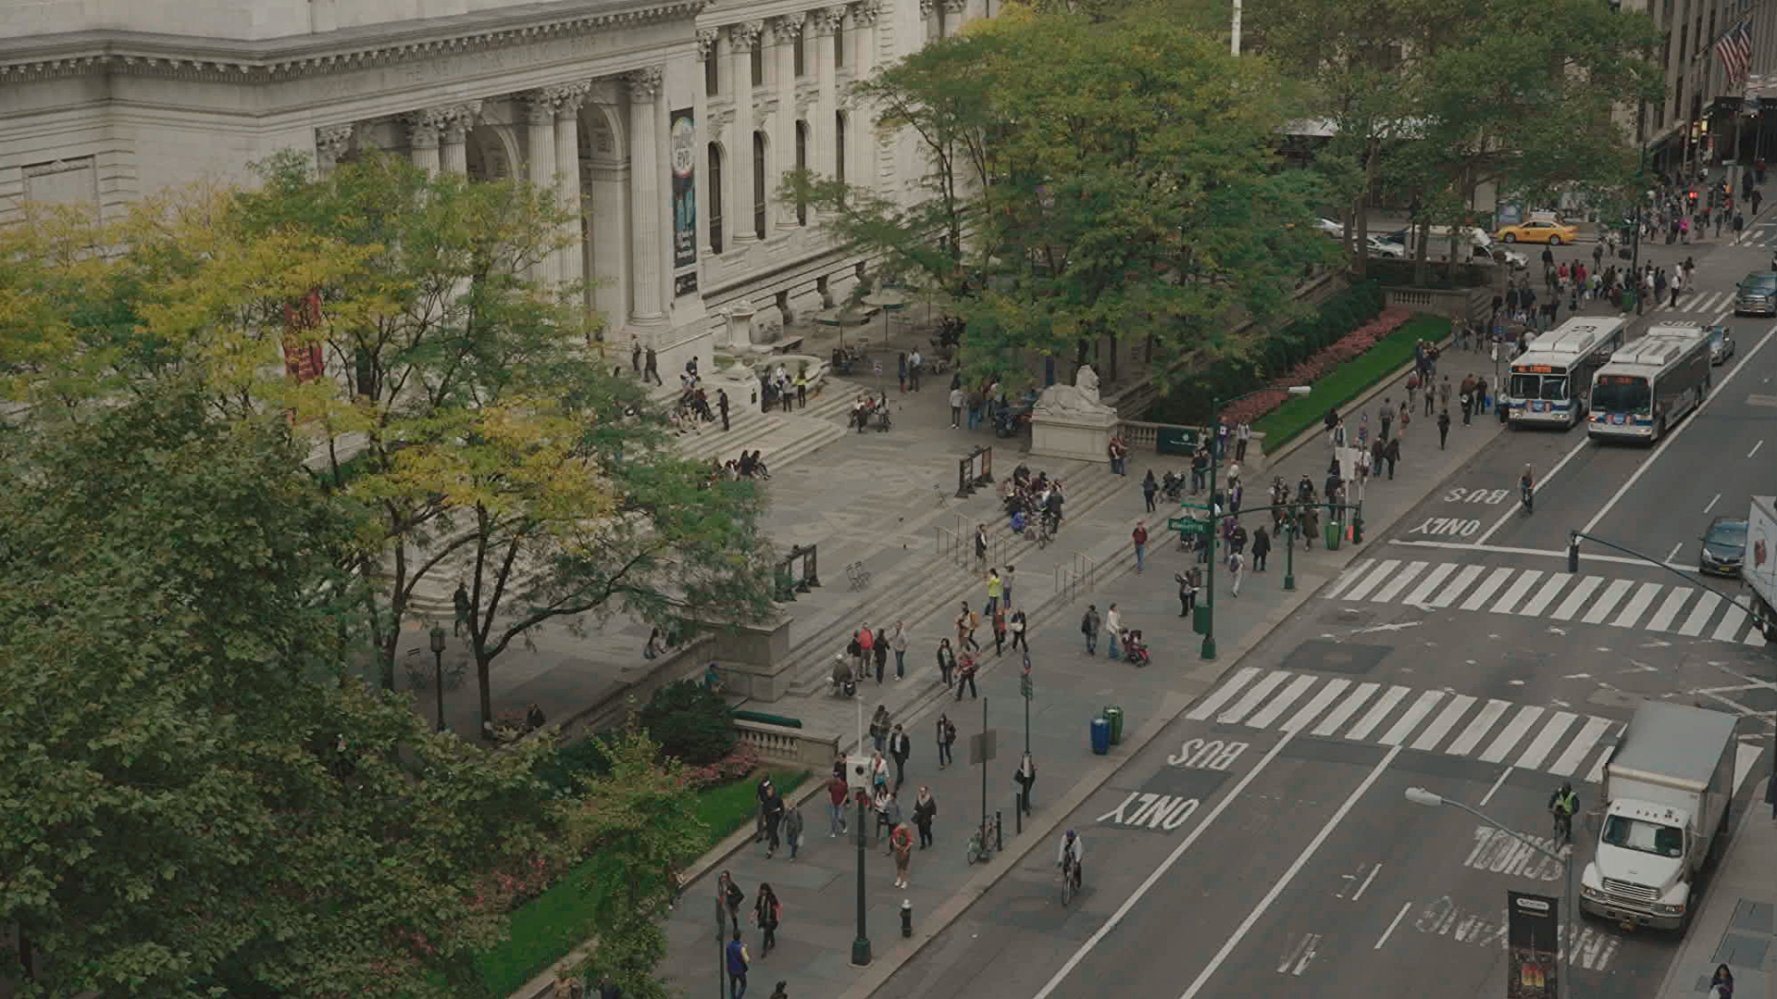 The New York Public Library - Frederick Wiseman